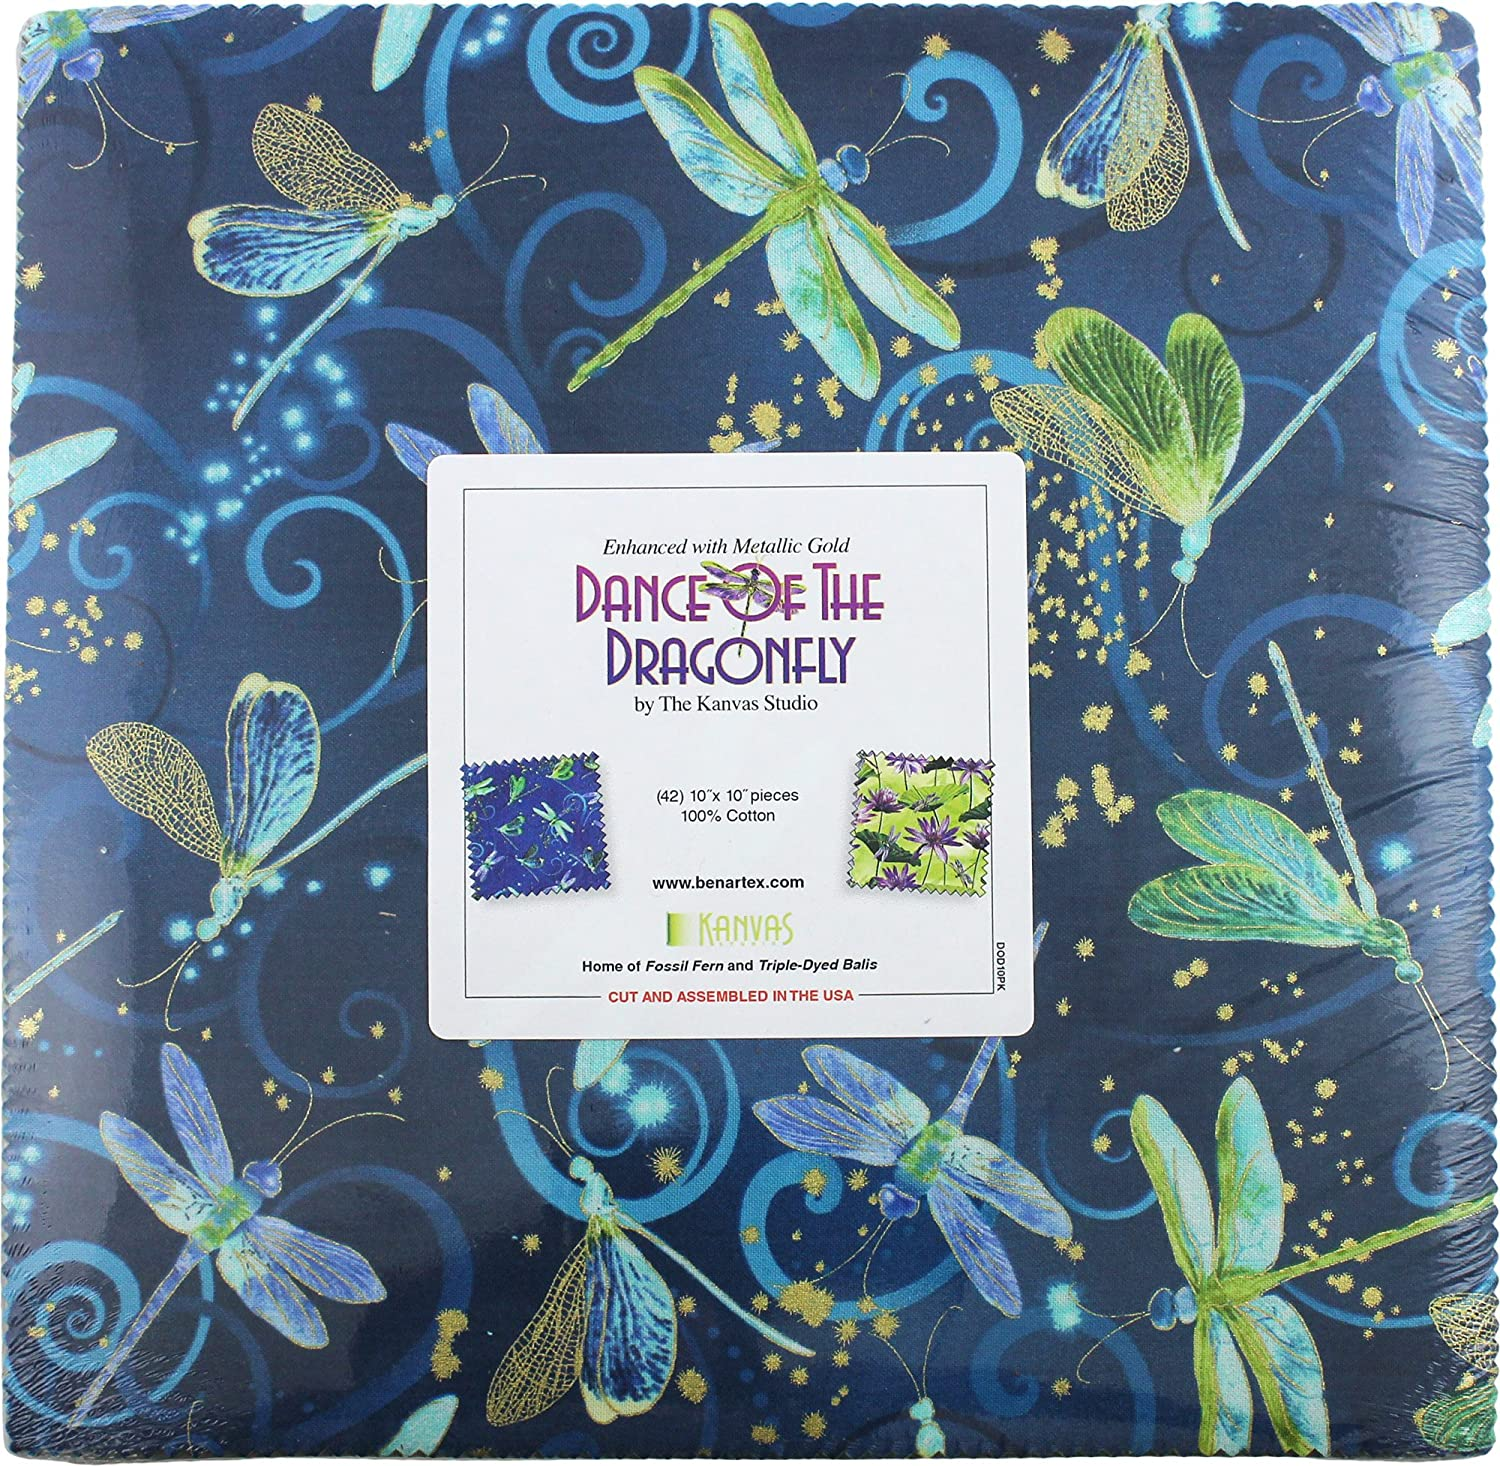 Benartex DANCE OF THE DRAGONFLY 10-inch Precut Squares Cotton Fabric Quilting Assortment Layer Cake DOD10PK